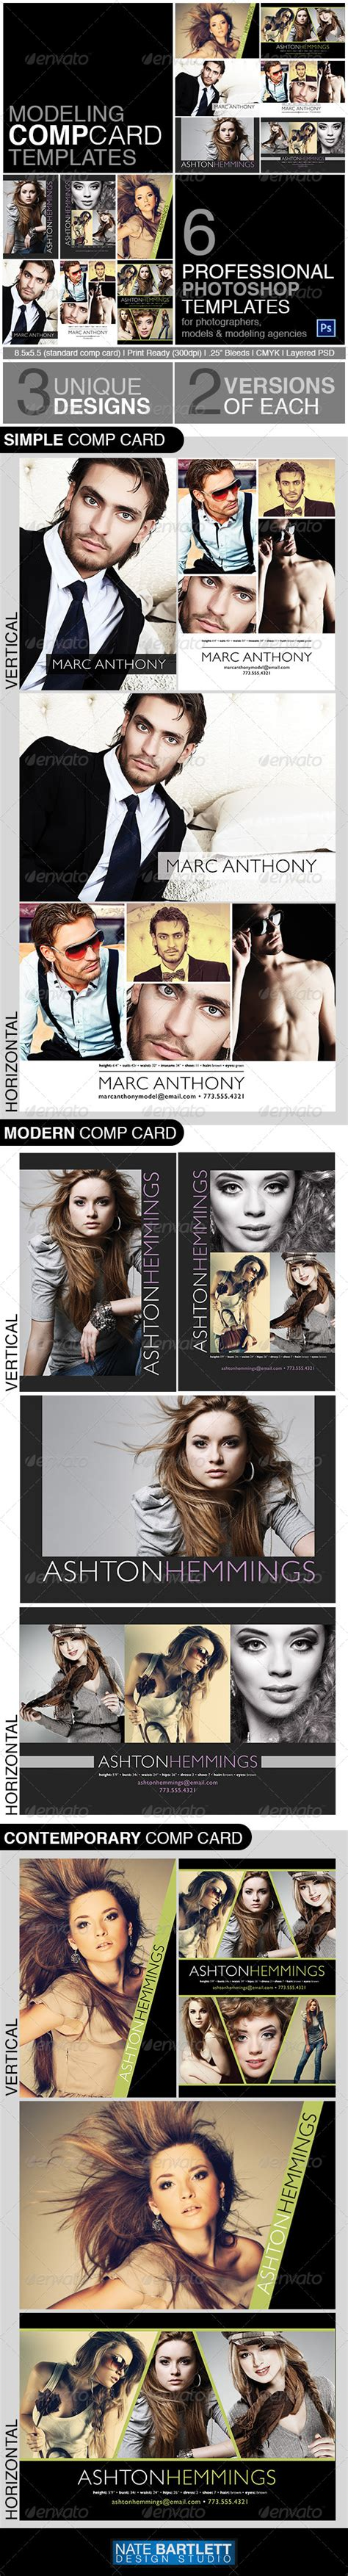 Model Comp Card Template Kit by Print Template Graphicriver Model Comp Card Template Kit